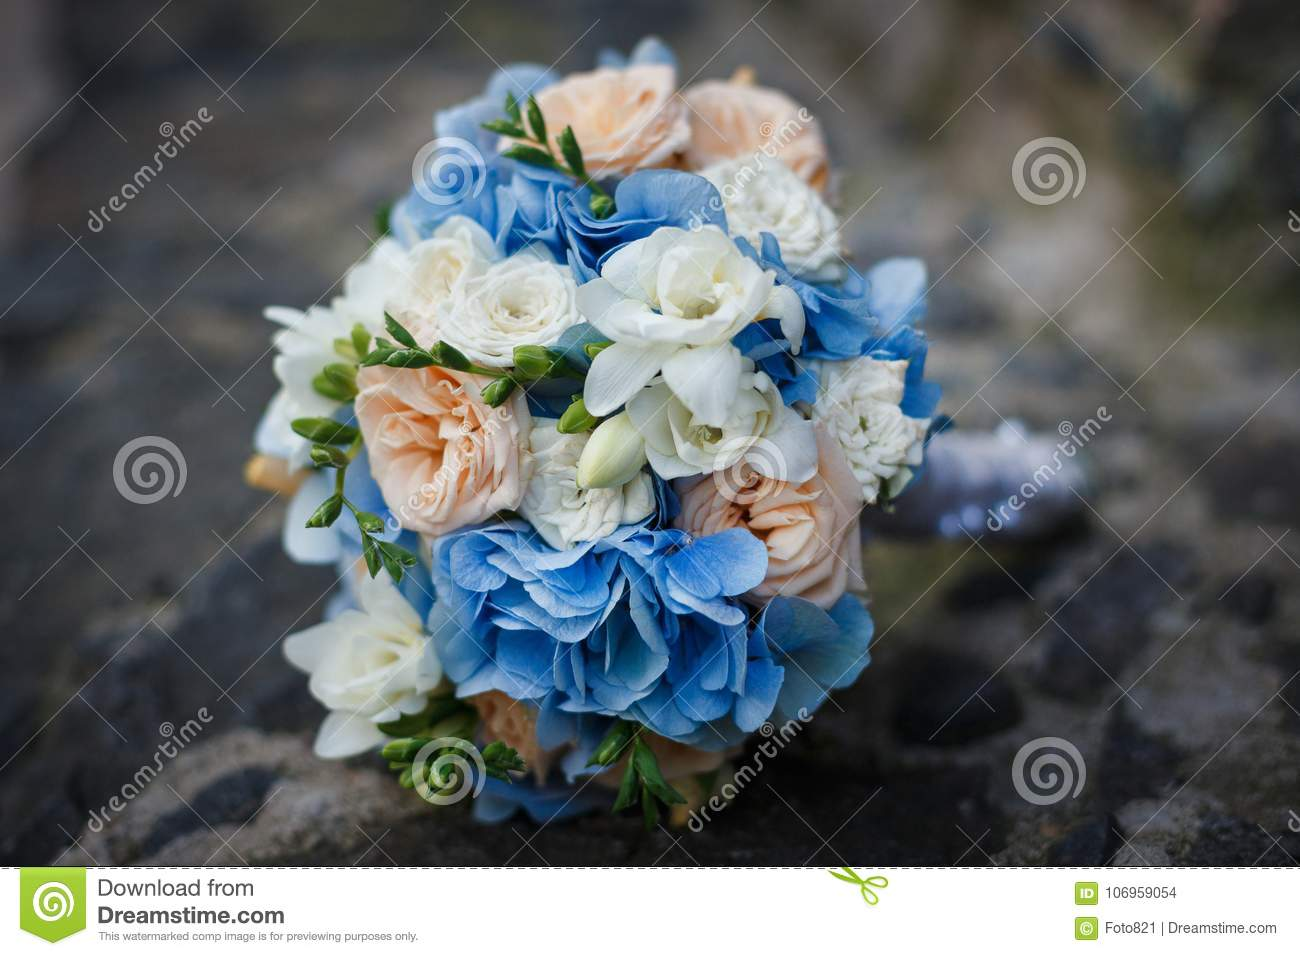 Tender bouquet of flowers stock photo. Image of cold